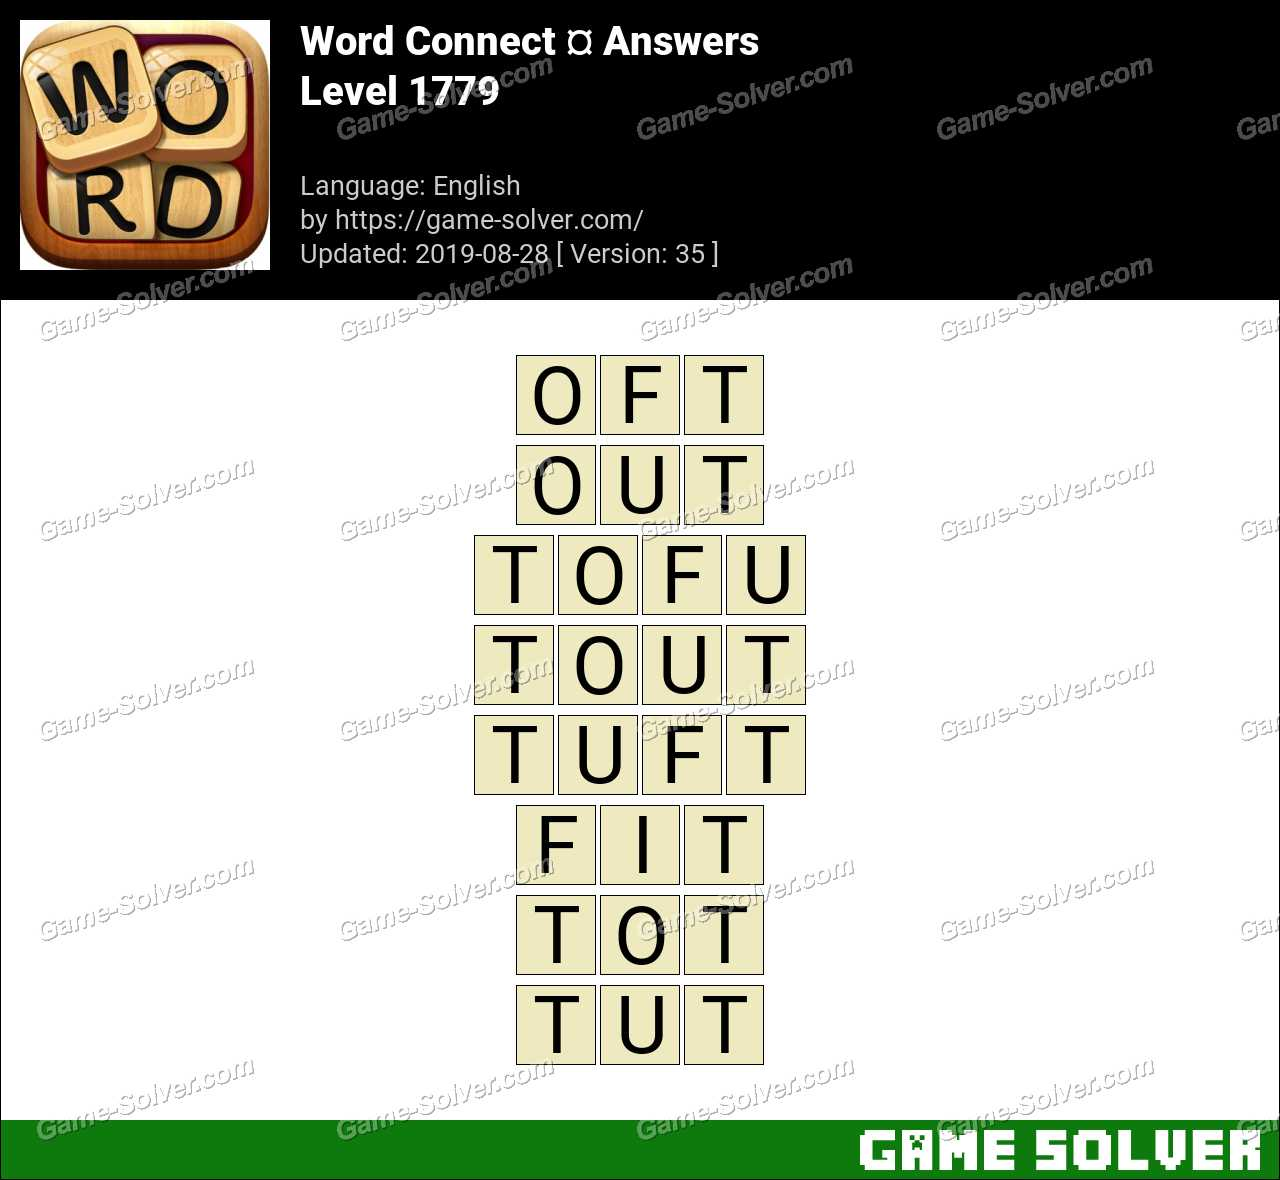 Word Connect Level 1779 Answers